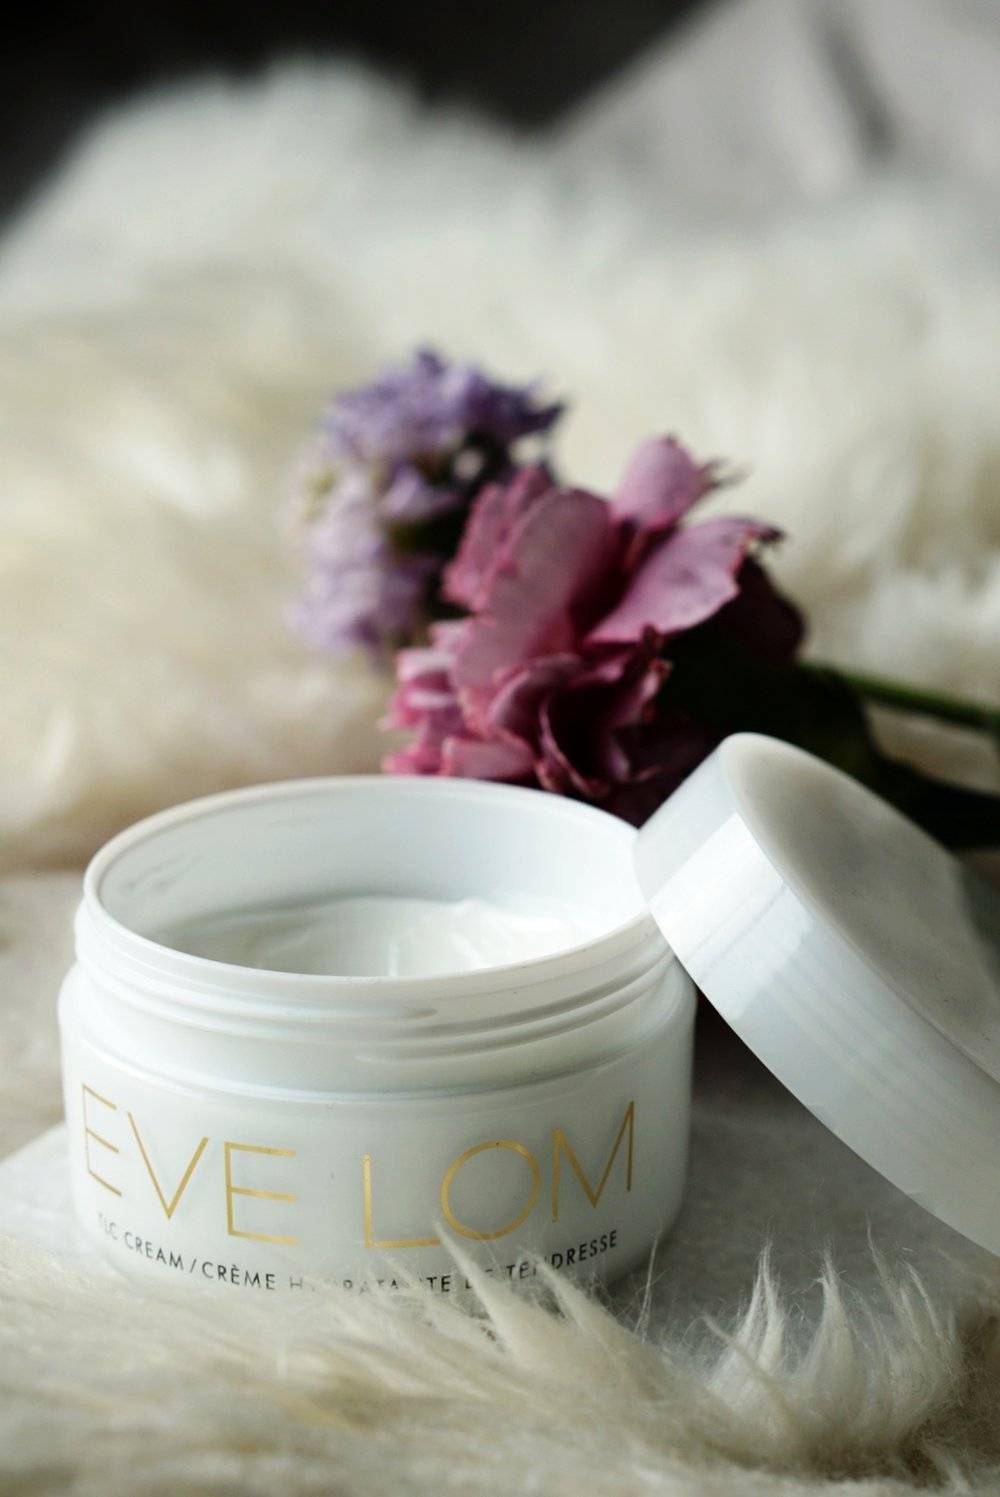 This cream now plays an important role in my evening skincare routine.